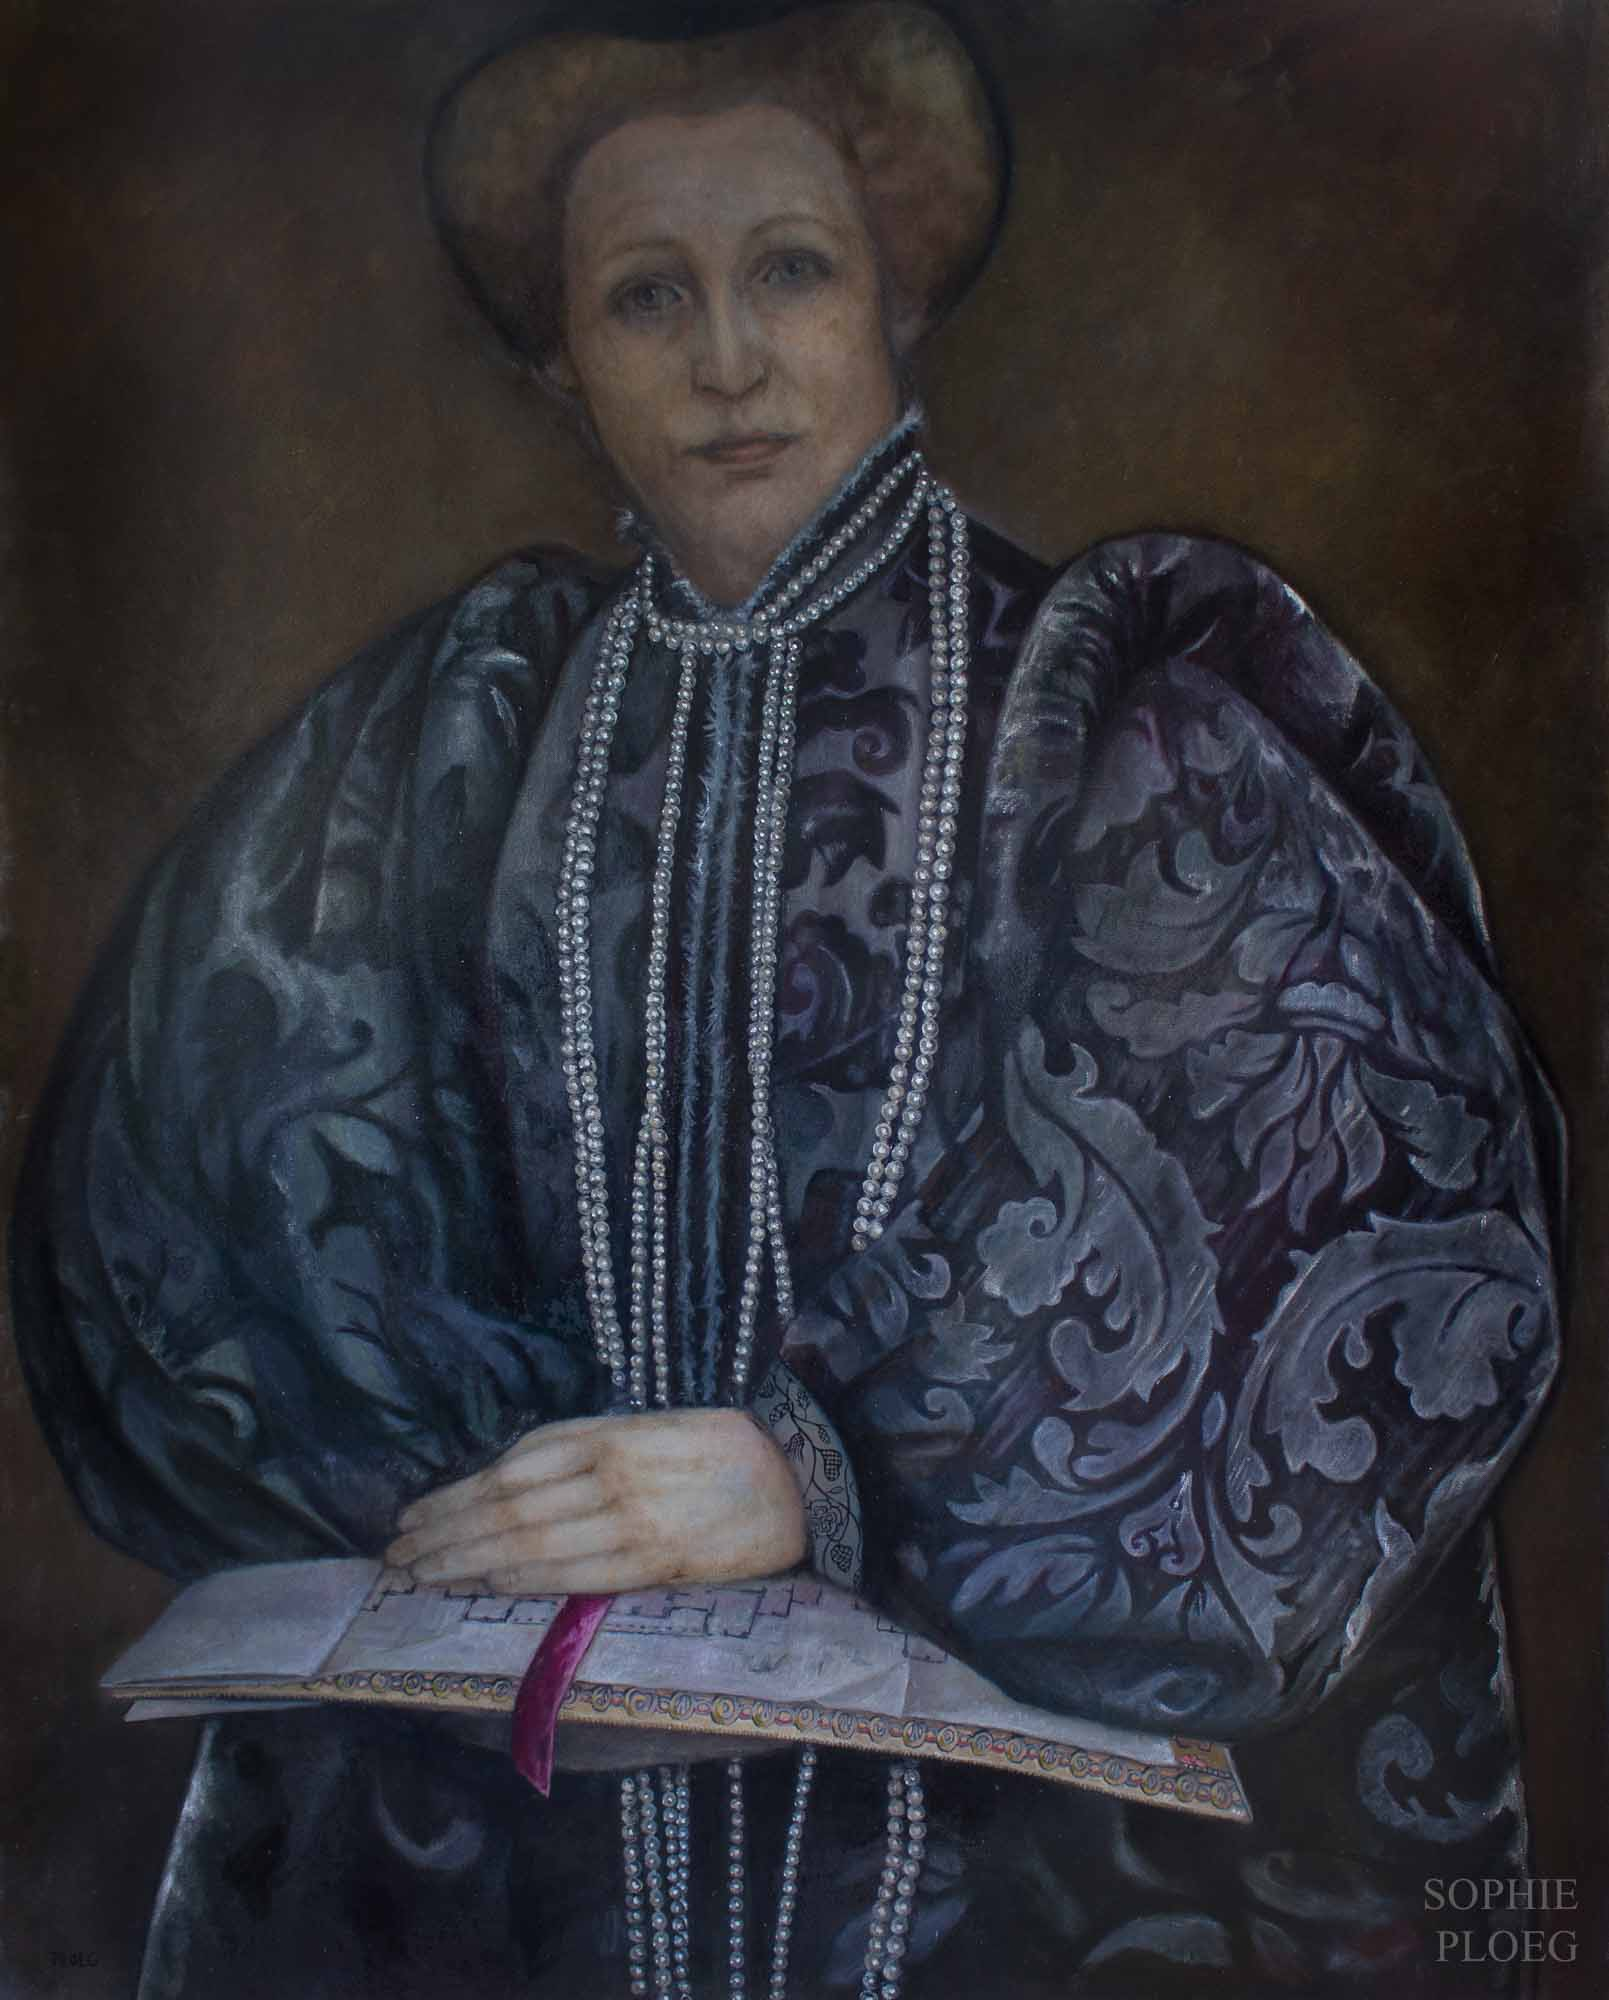 Sophie Ploeg, The Matriarch, oil on linen